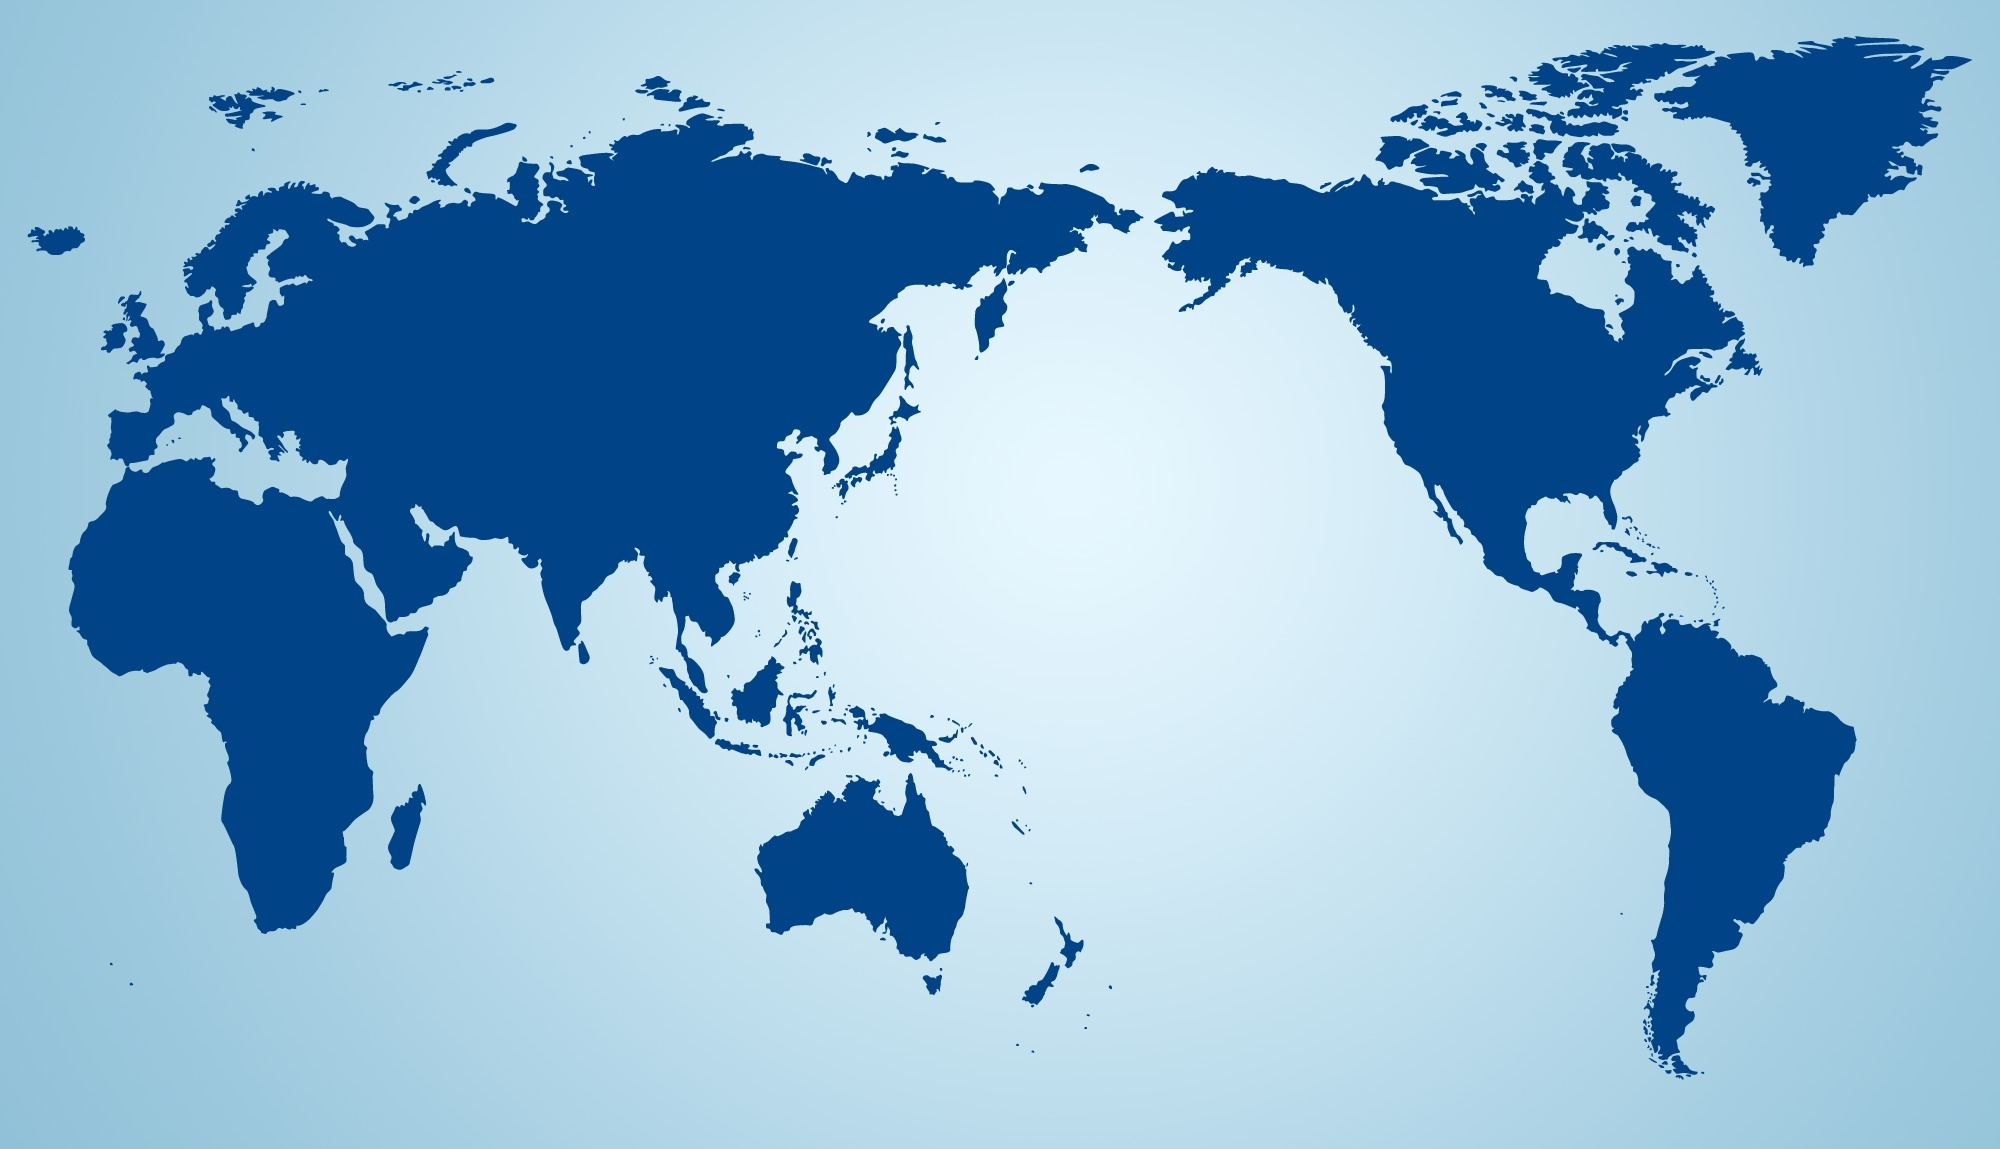 2000x1149 Flat World Map Image And Travel Information Download Free Flat